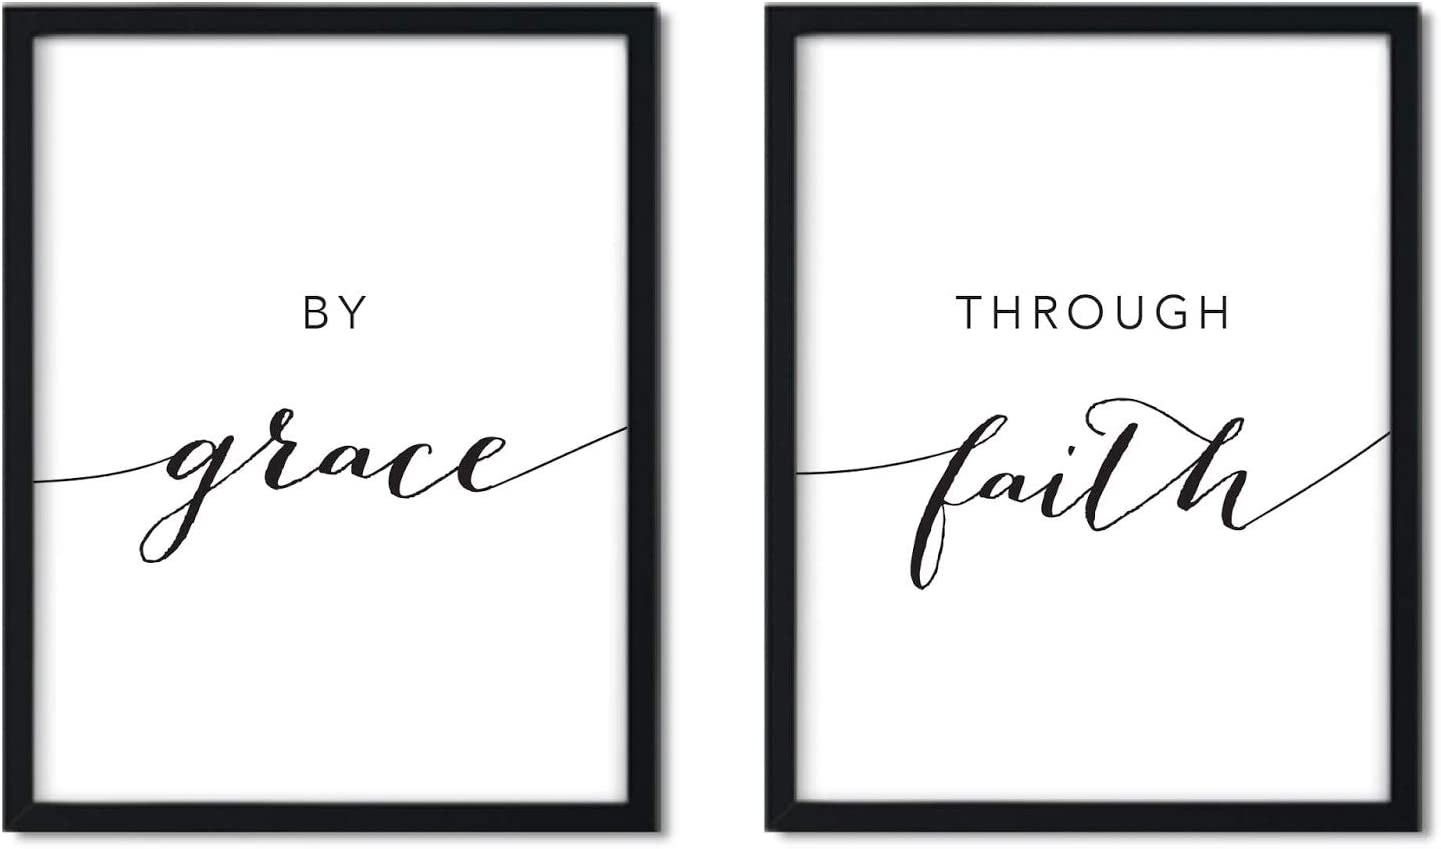 Andaz Press Unframed Black White Wall Art Decor Poster Print, Bible Verses, by Grace, Through Faith, 2-Pack, Unique Christian Christmas Birthday Gift for Him Her New Home